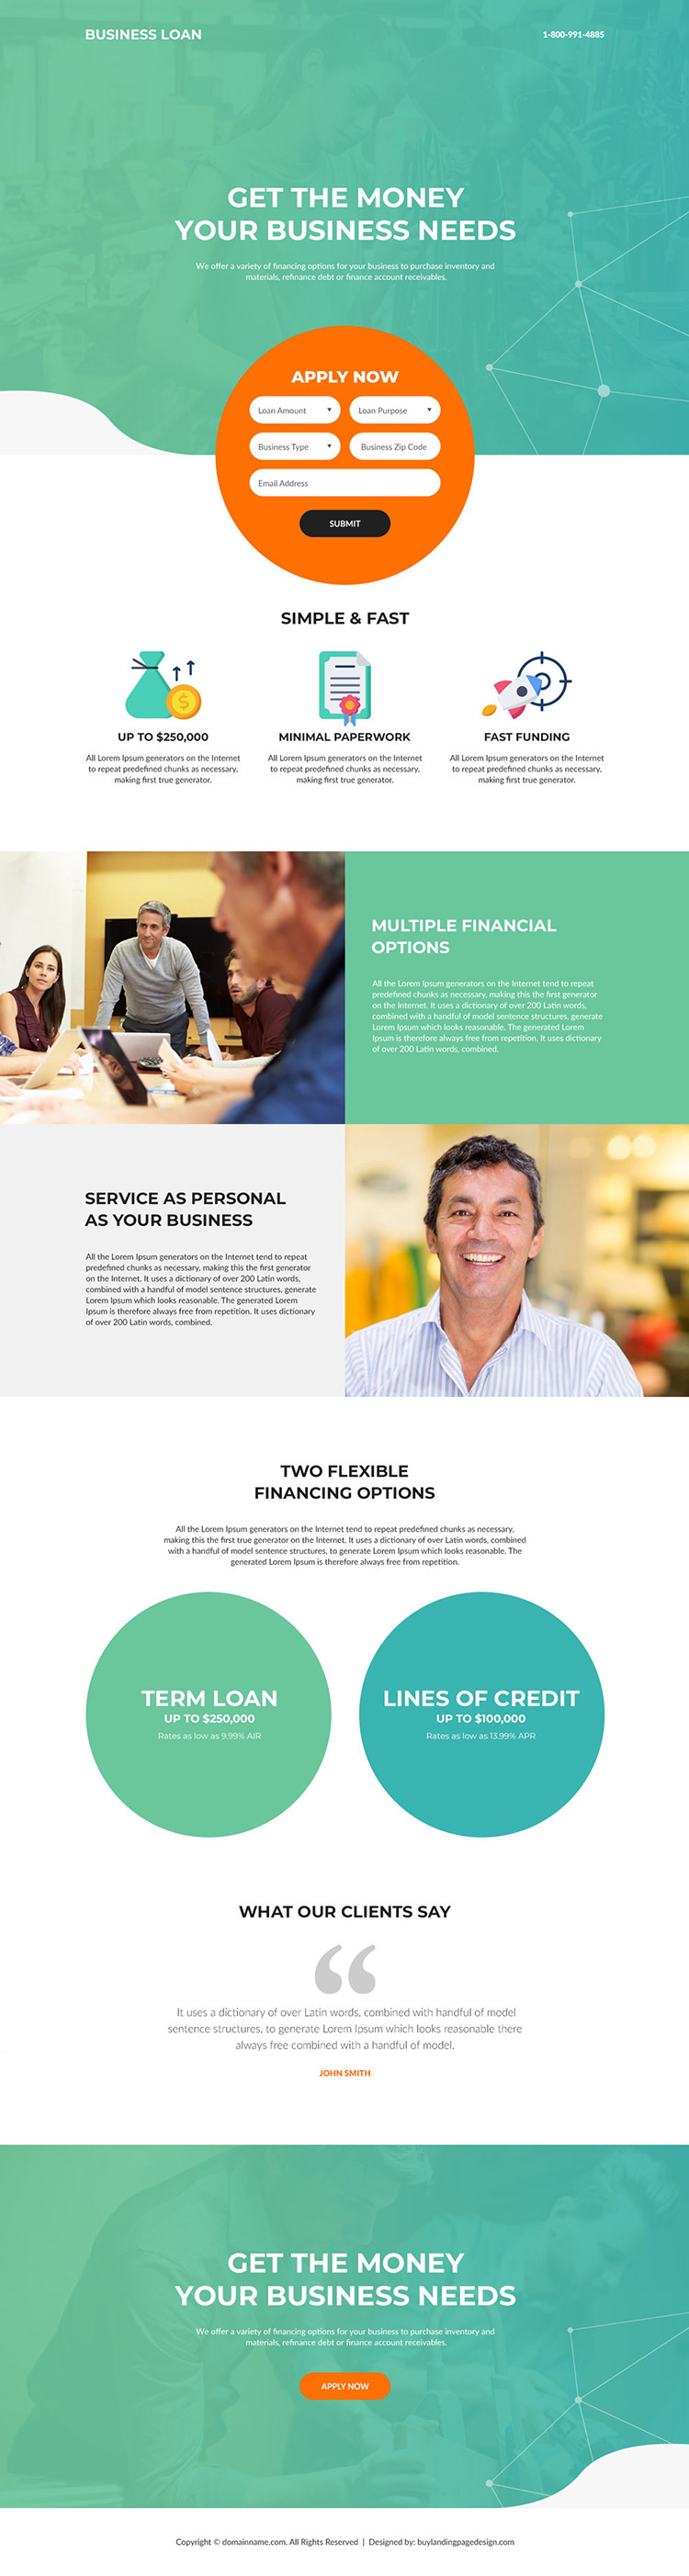 small business financing modern landing page design